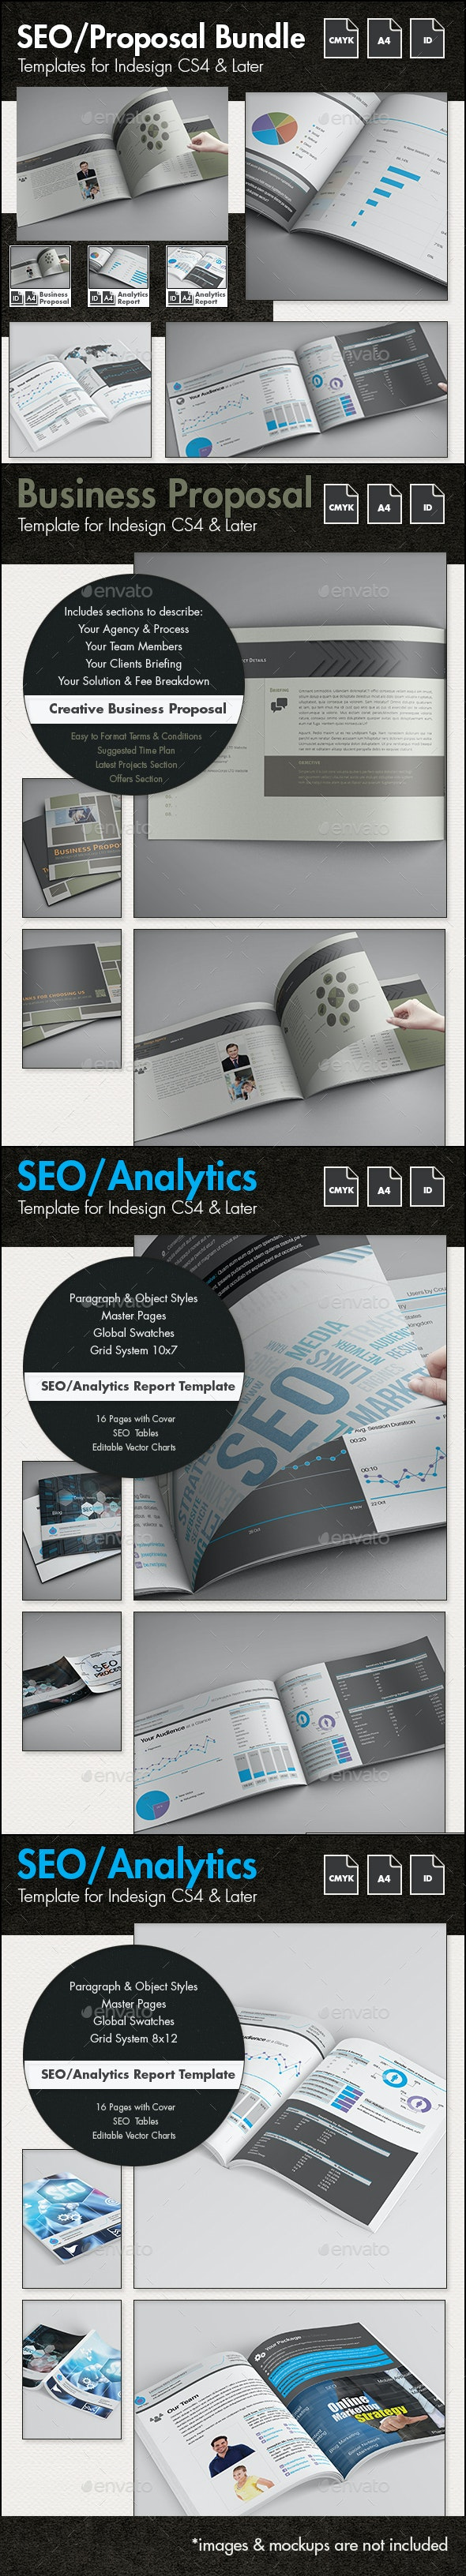 SEO - Business Proposal Templates Bundle - Proposals & Invoices Stationery